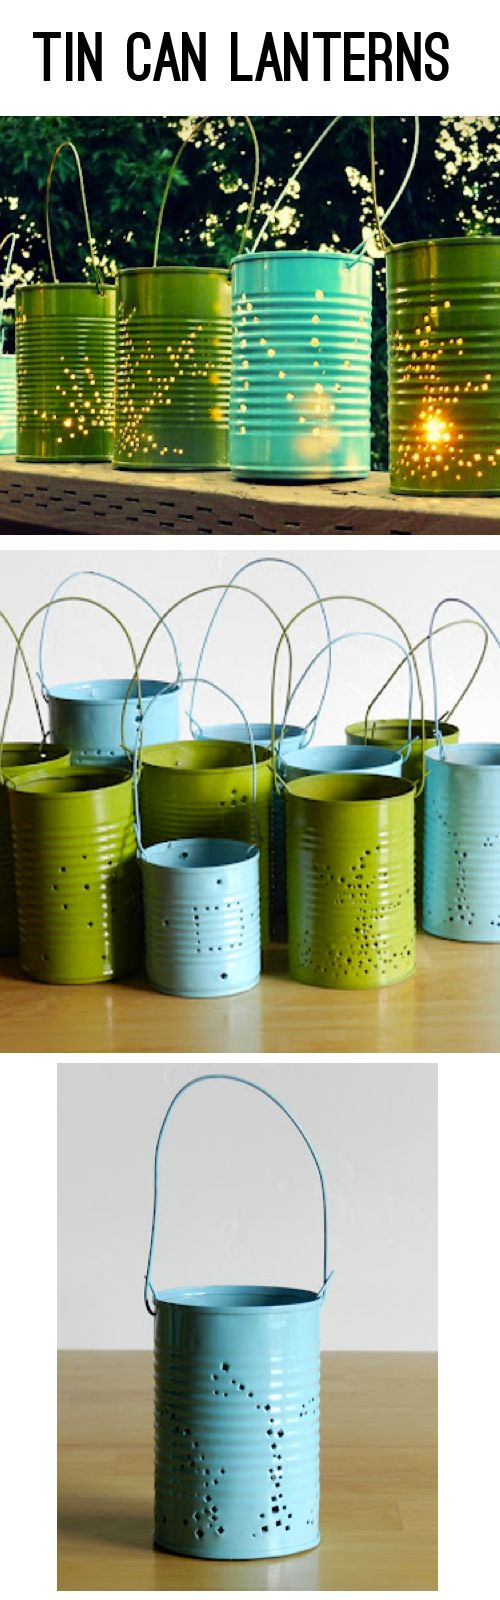 Repurpose tin cansTins Cans Parties, Outdoor Luminaries, Repurposing Tins, Repurpoed Tins, Spring Colors, Outdoor Parties, Growing Creative, Tin Can Lanterns, Tins Cans Lanterns